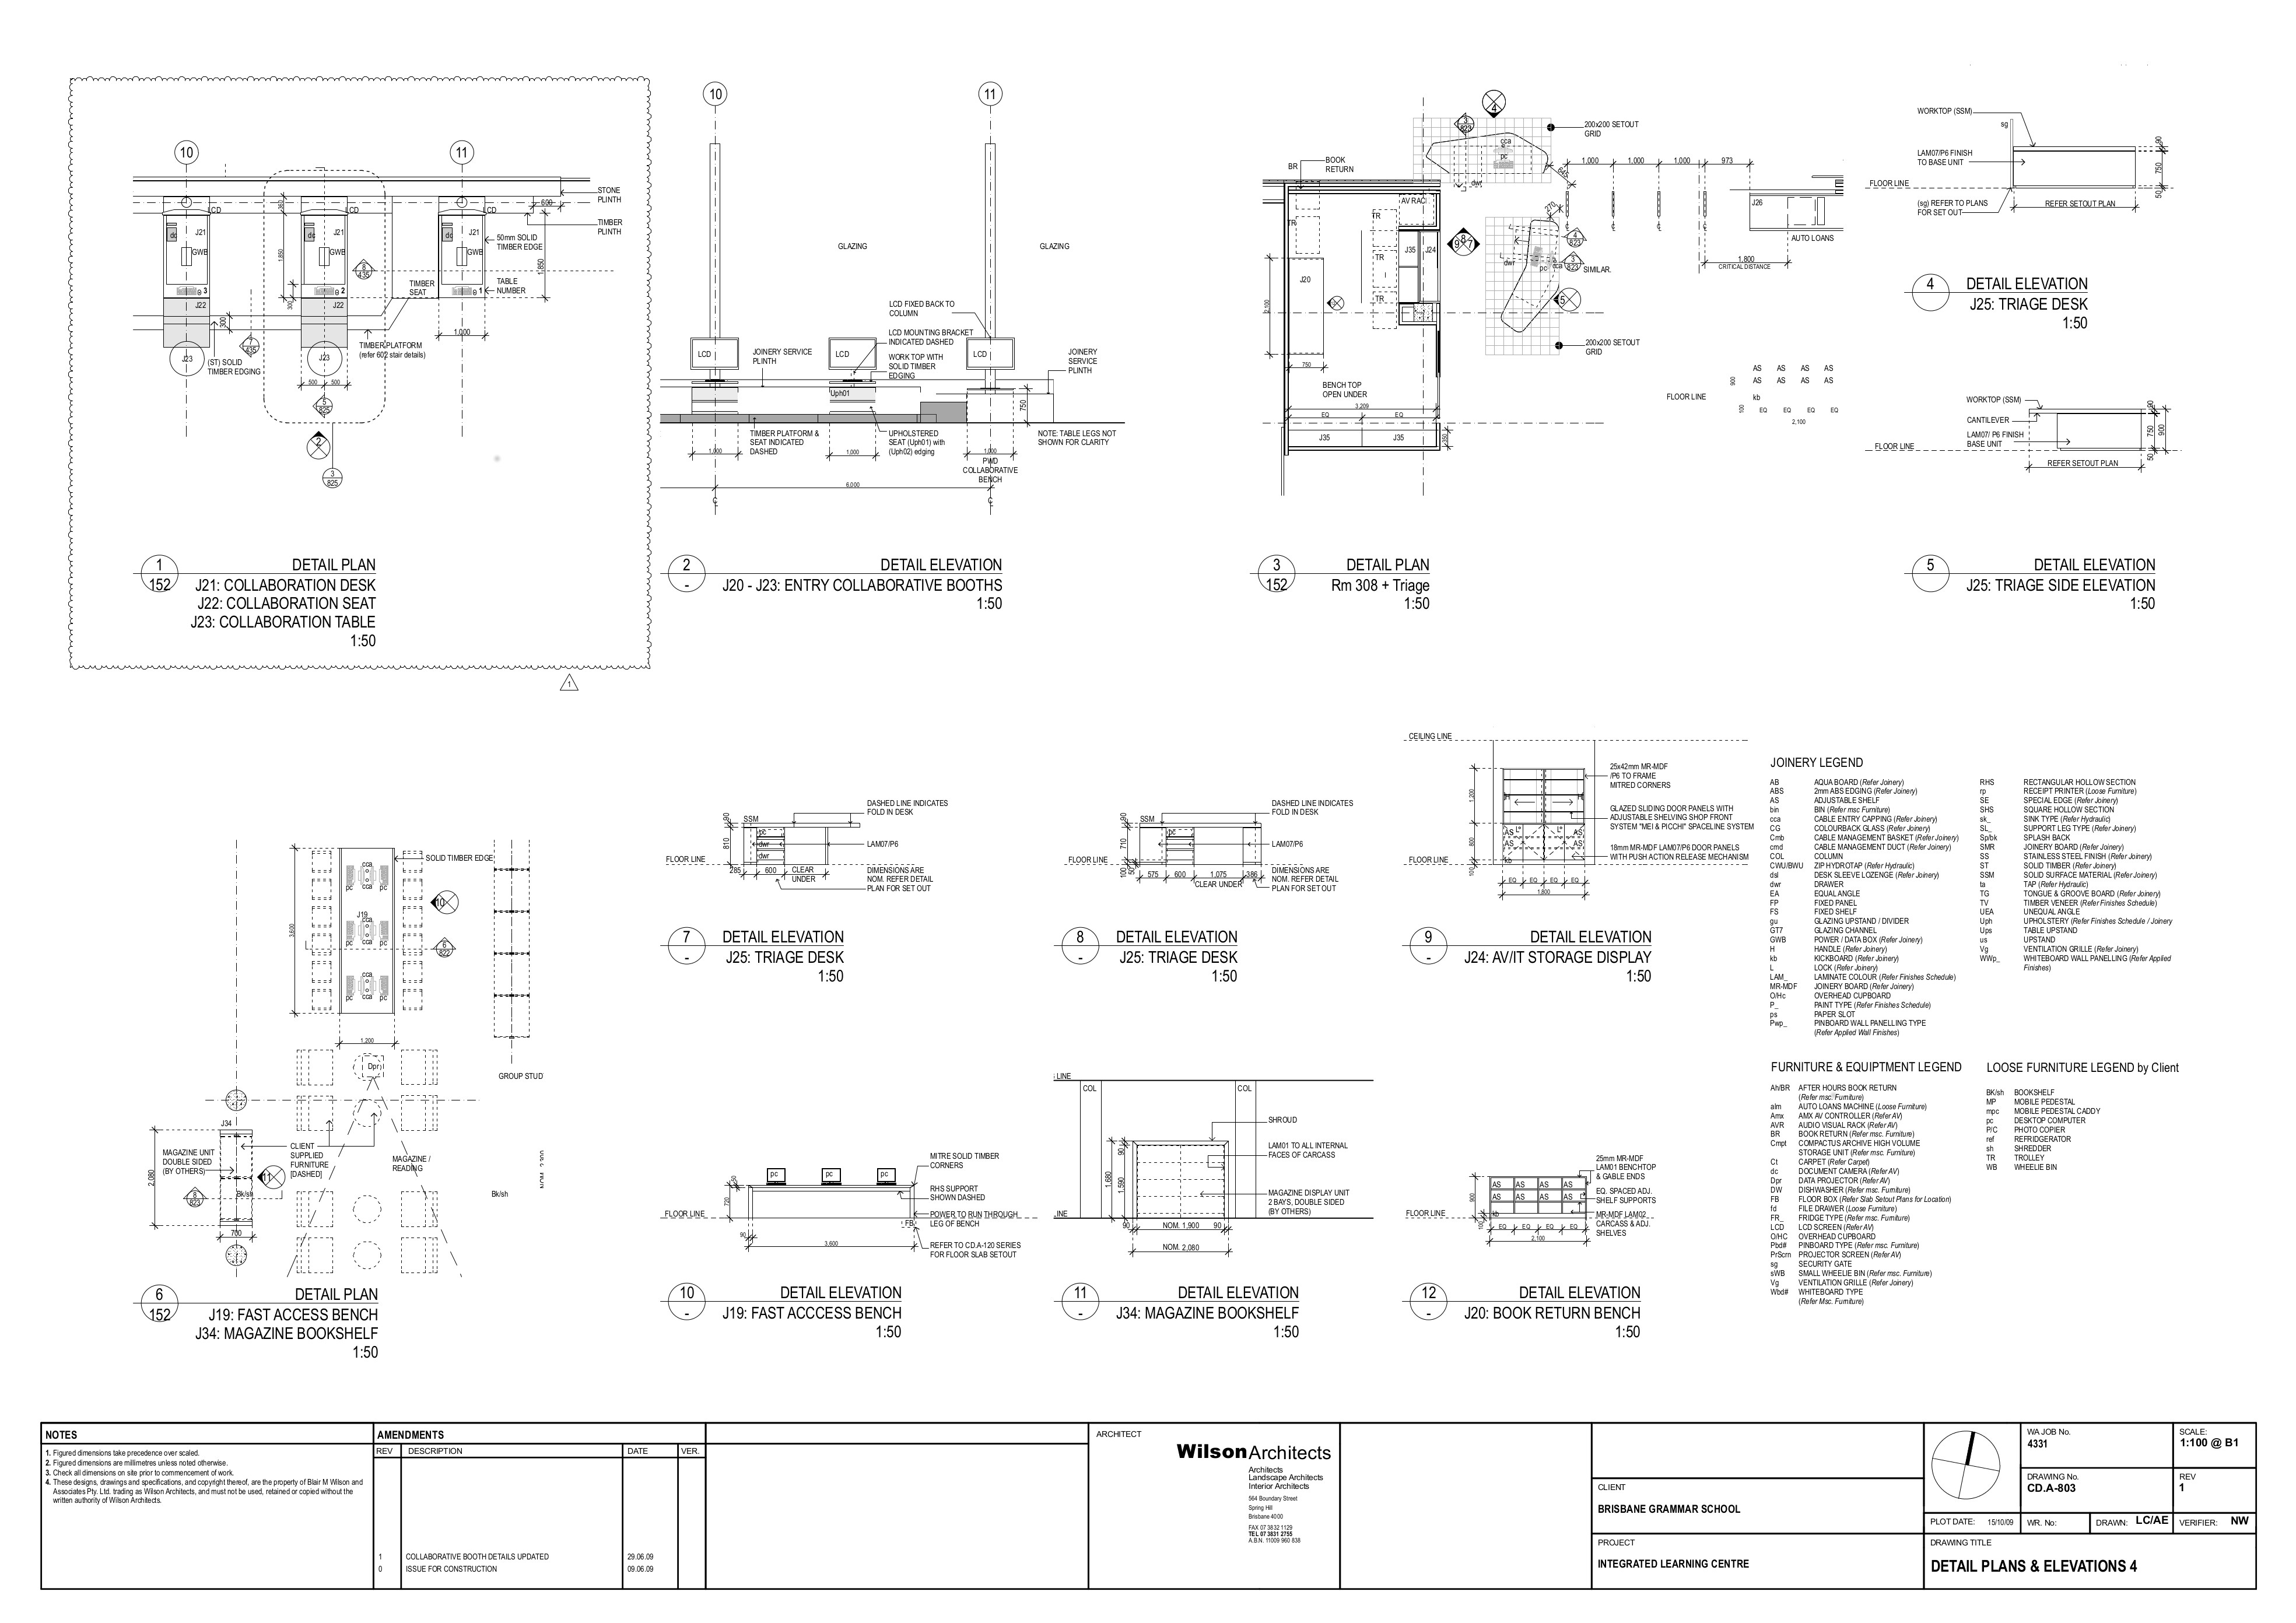 Furniture Detailing Drawings Furniture Details ©wilson